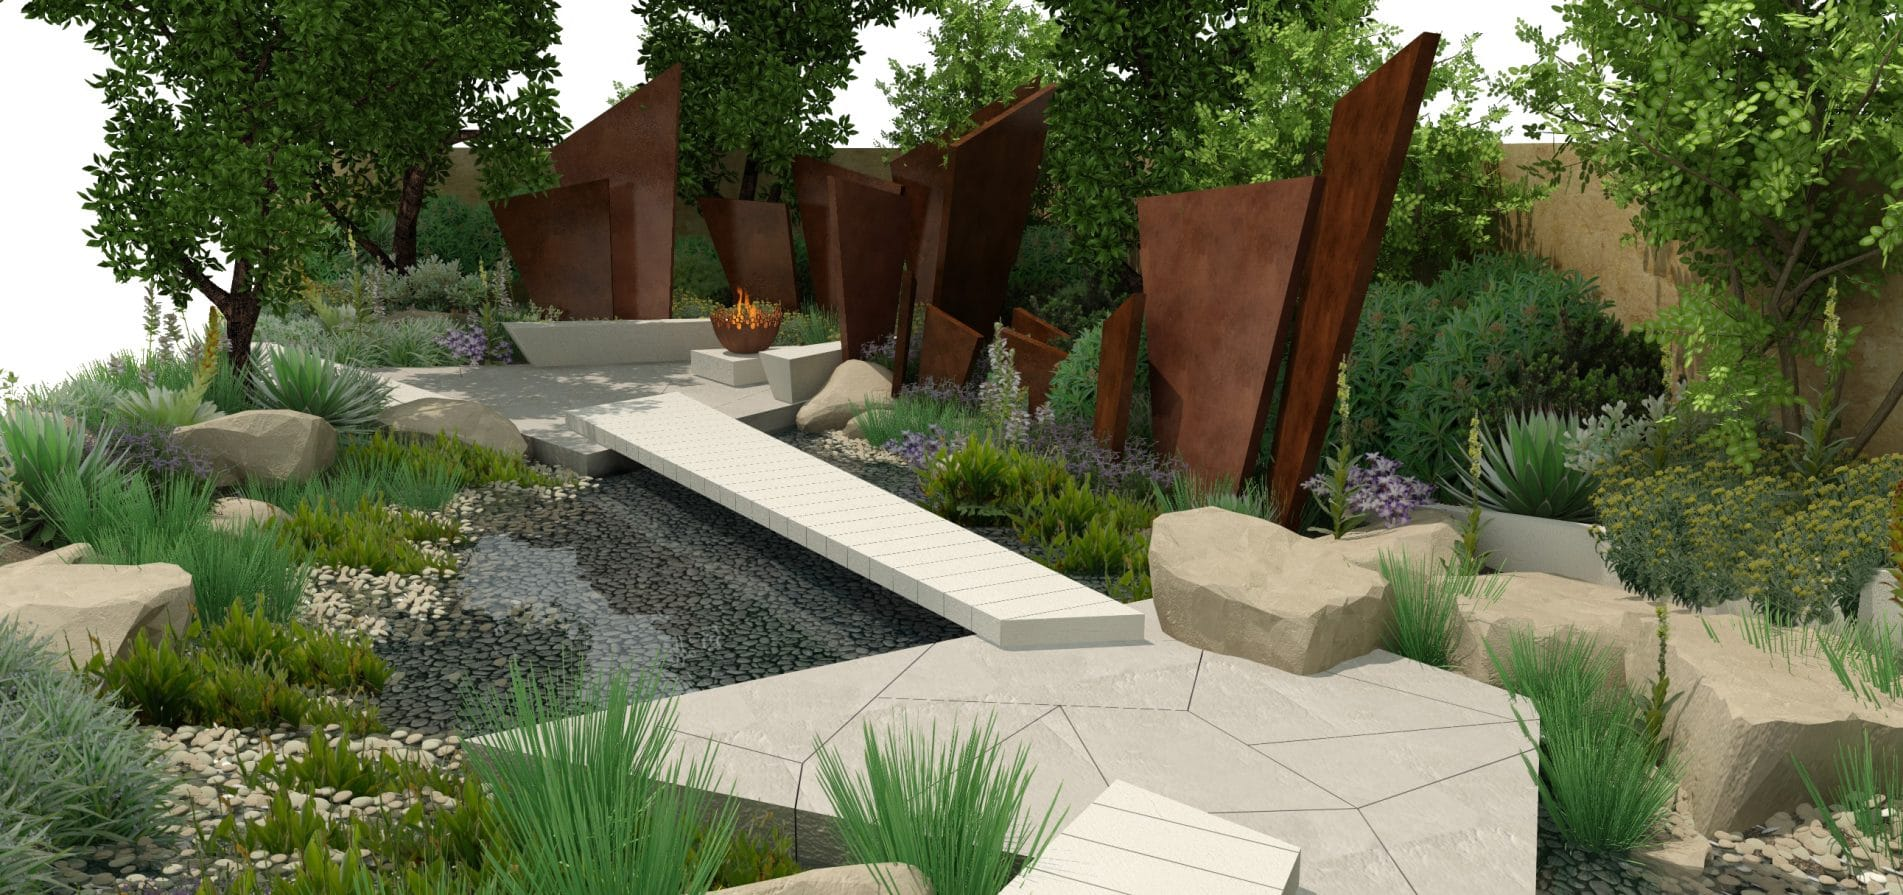 Chelsea flower show 2016 andy sturgeon design for Garden design ideas rhs